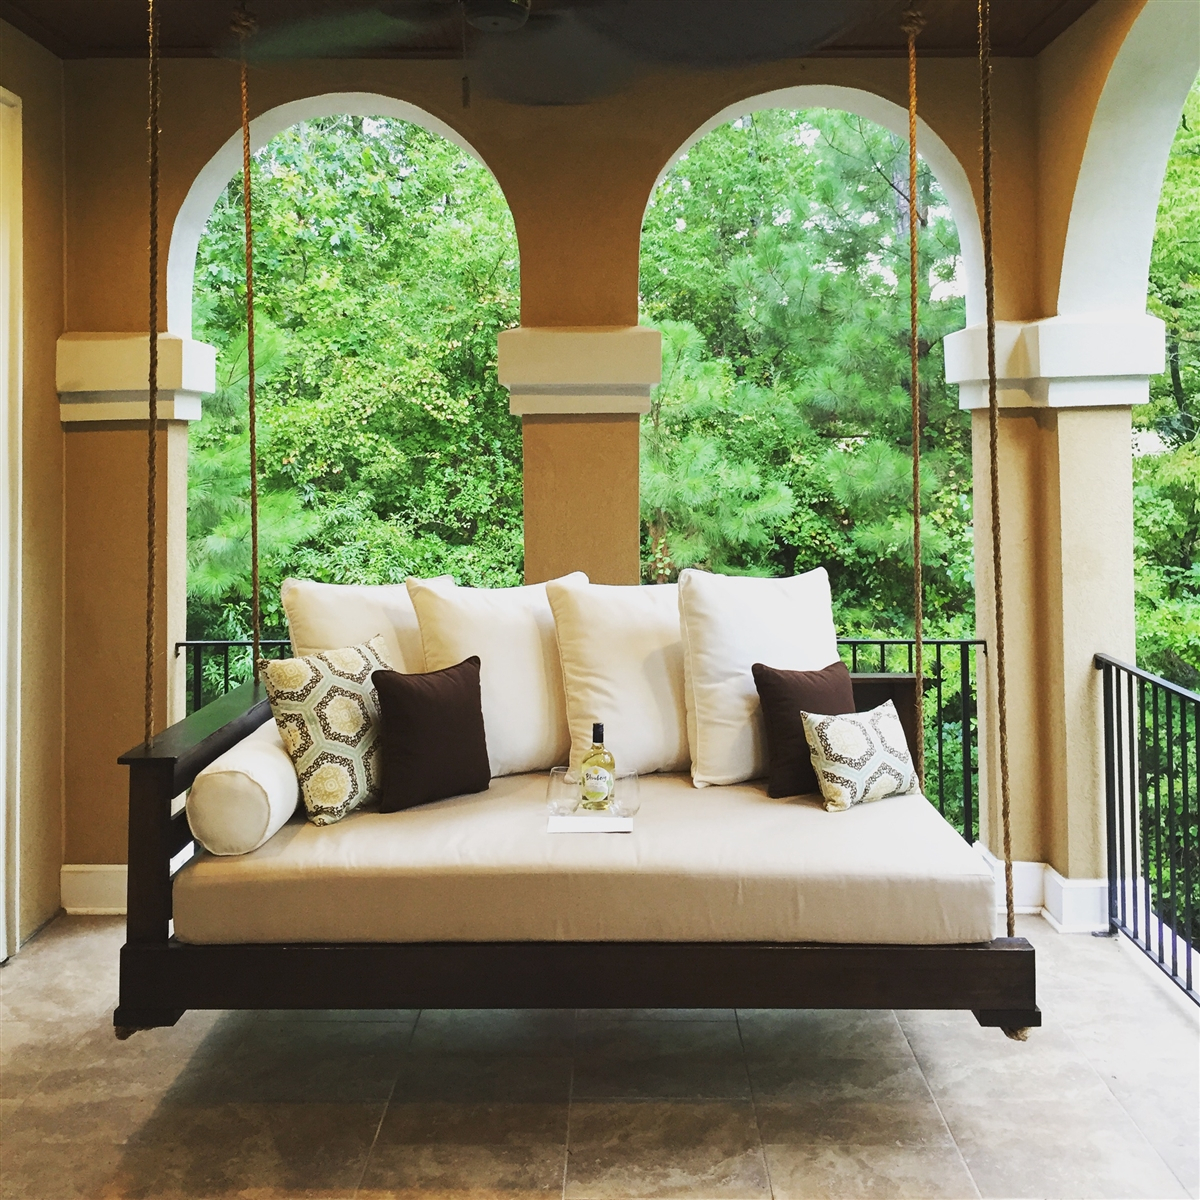 Great And Fun Ideas Porch Swing Bed For Country Style Hanging Daybed Swings (View 13 of 25)